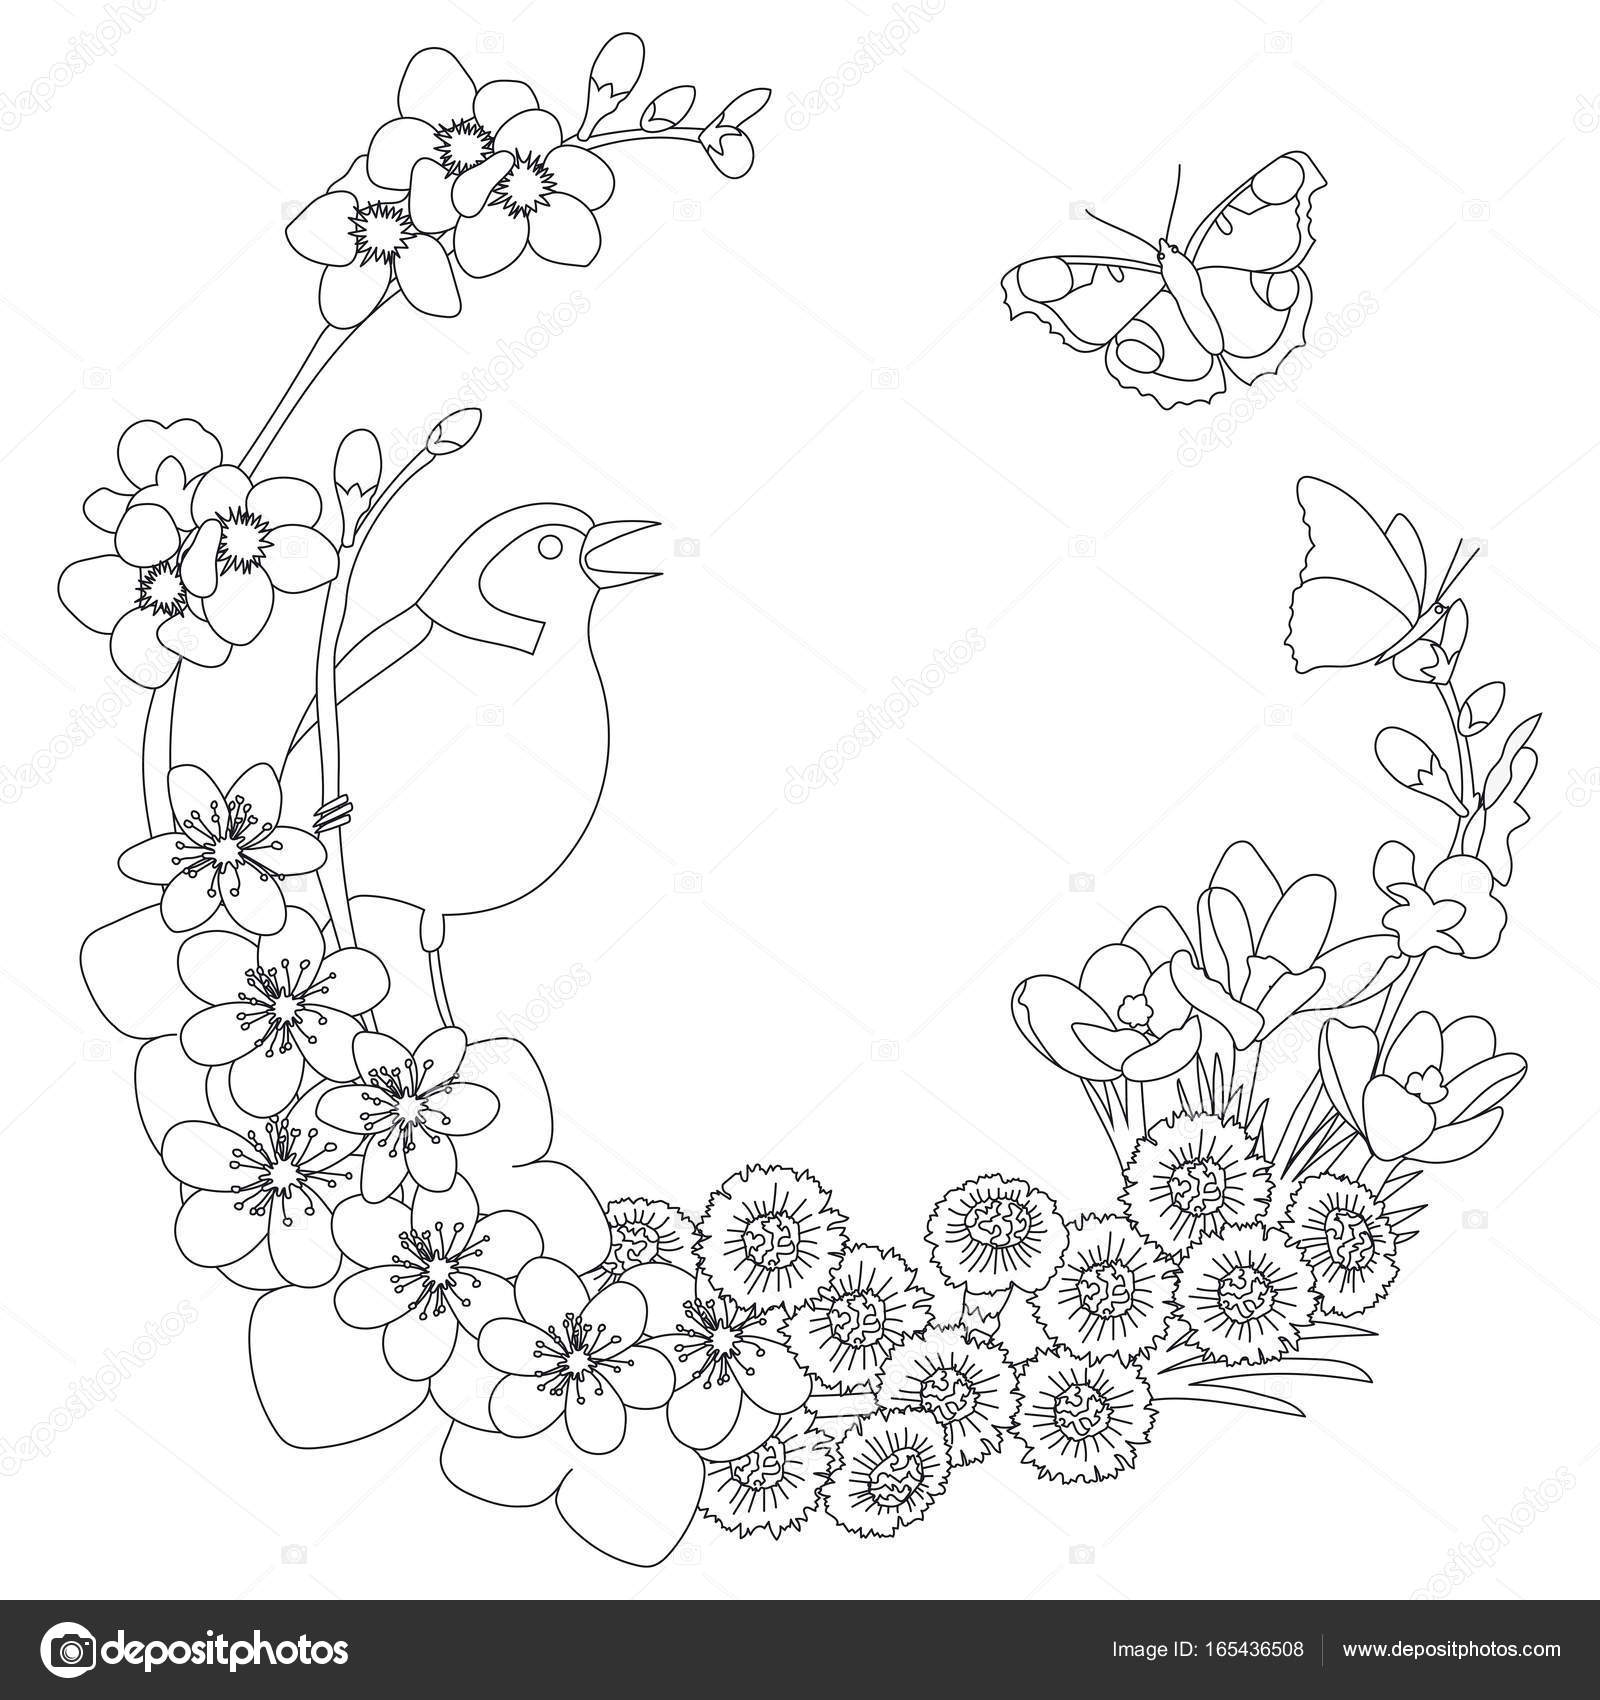 Spring Floral Elegant Wreath Coloring Page Stock Vector C Mushika